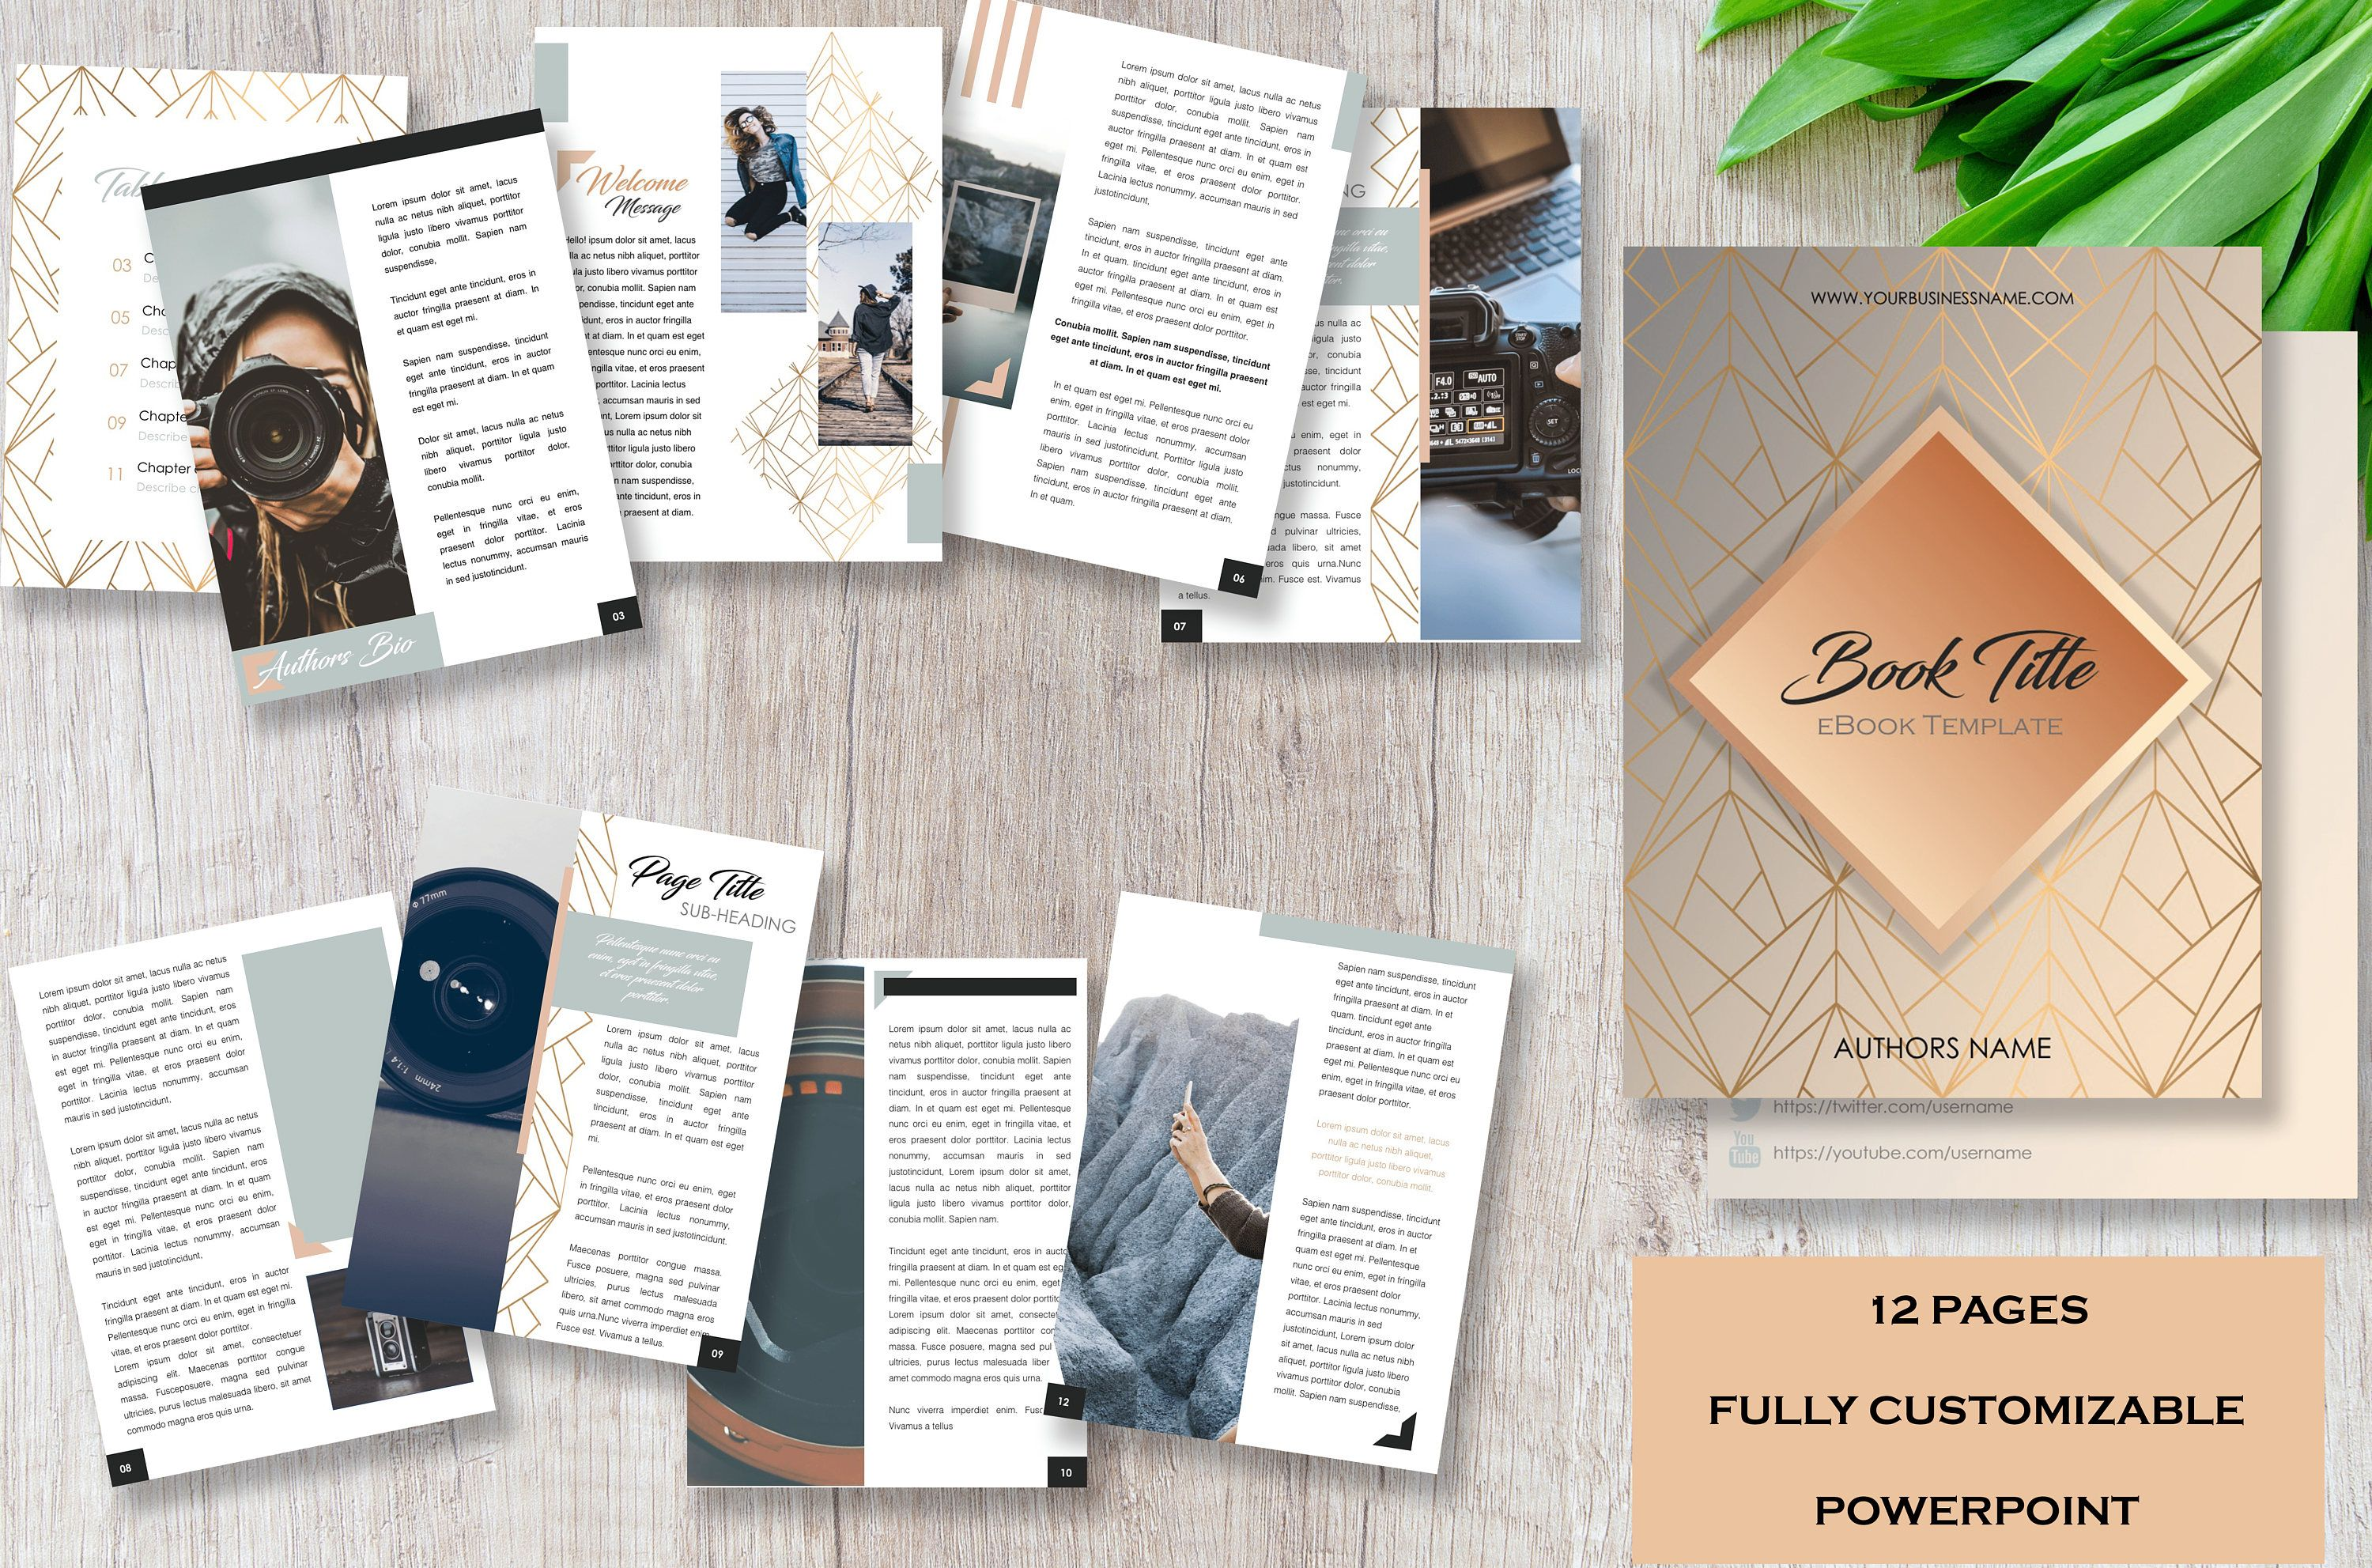 Ebook Template 12 Pre Designed Pages Fully Customizable Point By Wordographycontent On Etsy